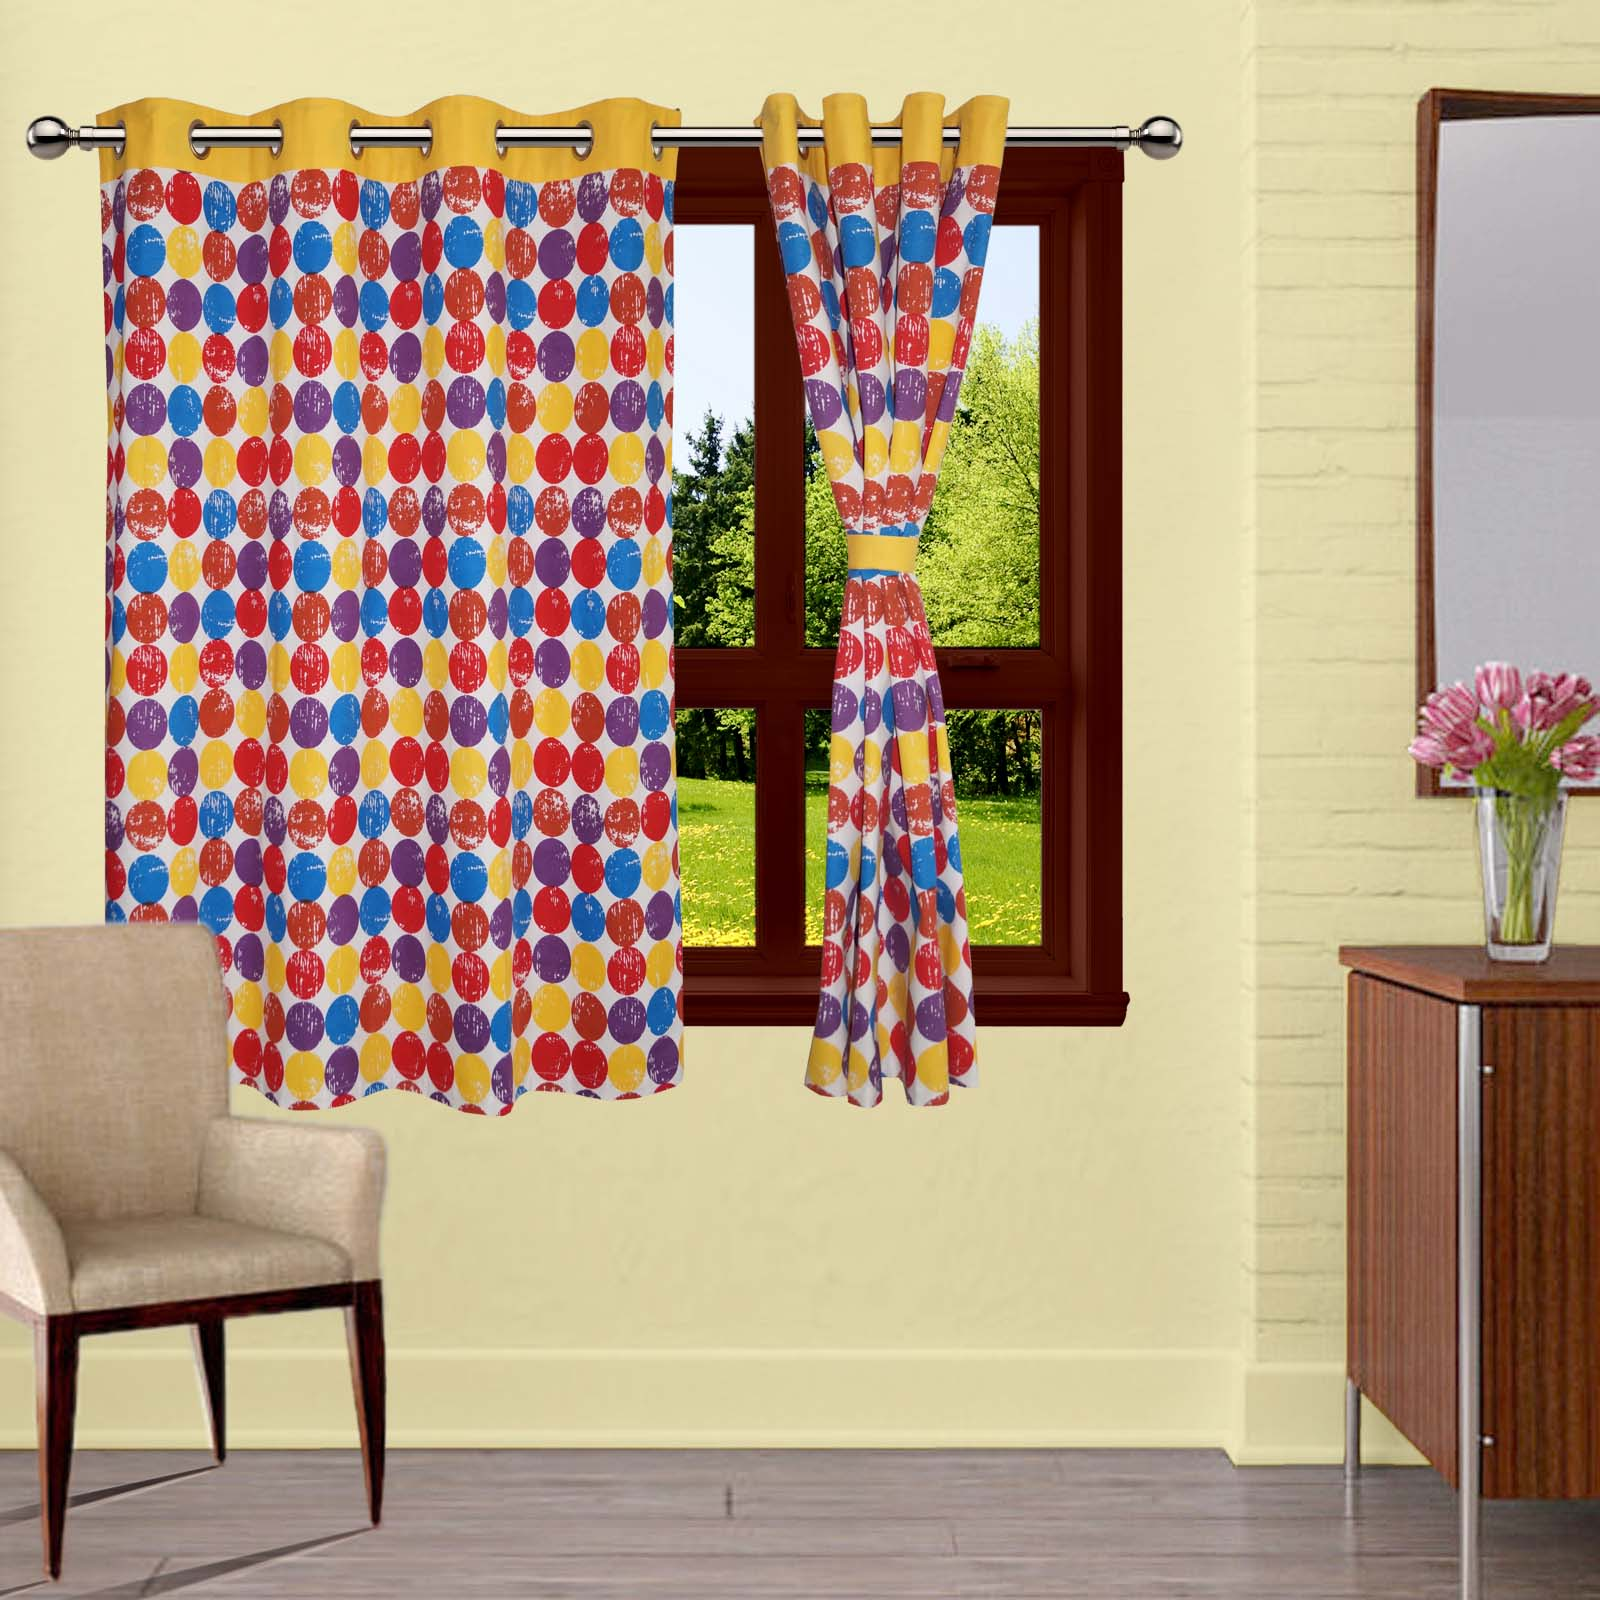 Lushomes Titac Printed Cotton Curtains with 8 Eyelets & Plain Tiebacks for Windows (Single Pc)